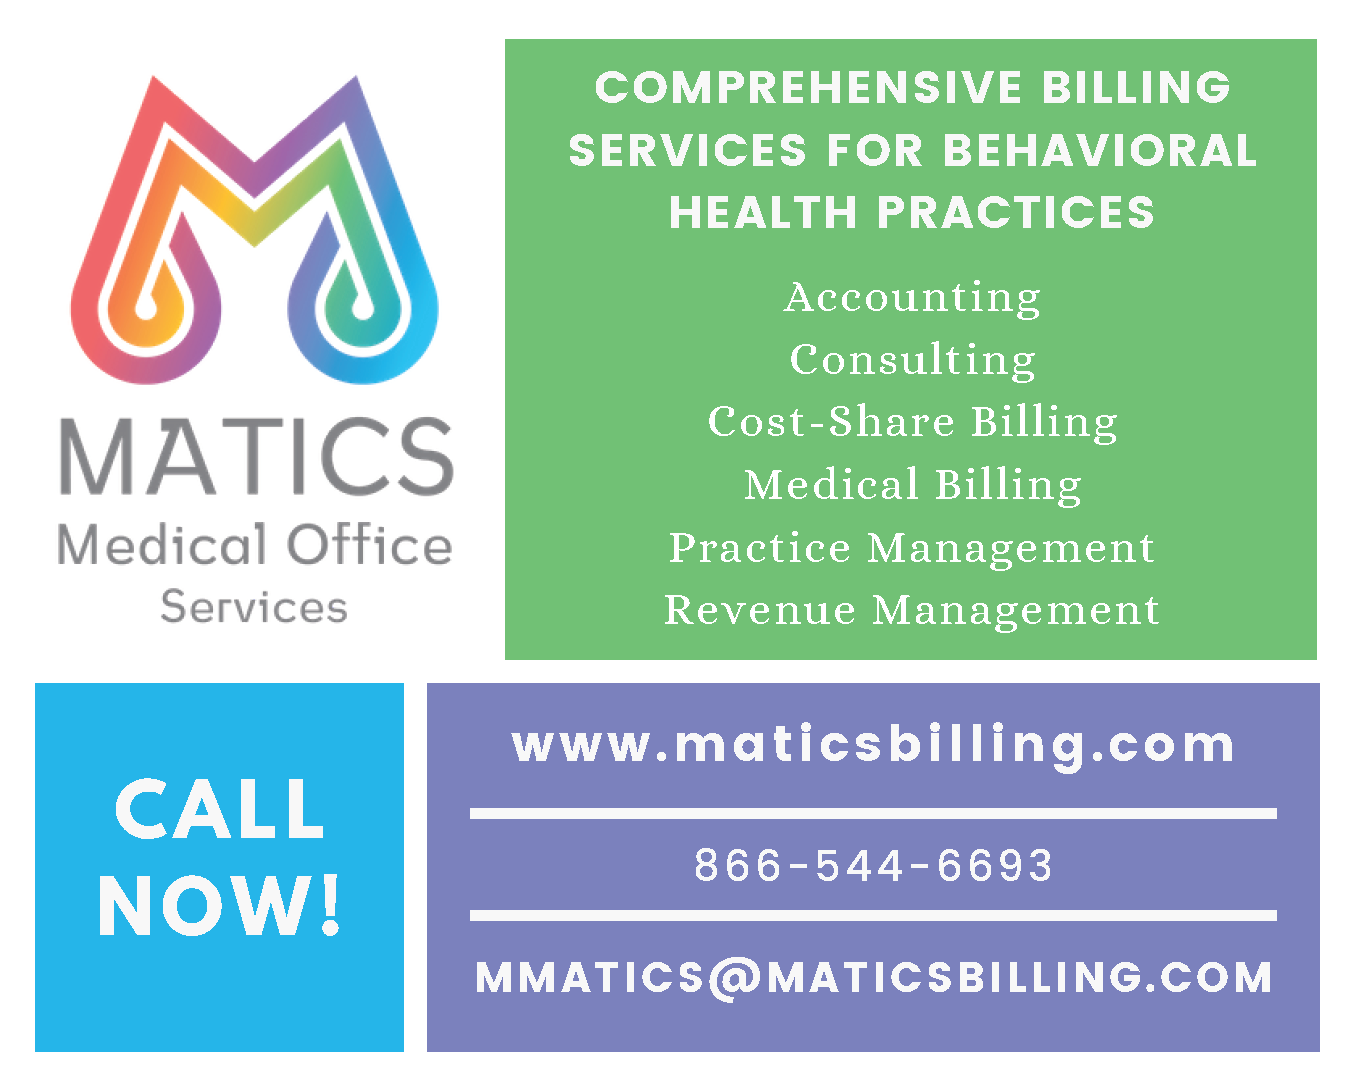 Matics Medical Office Services